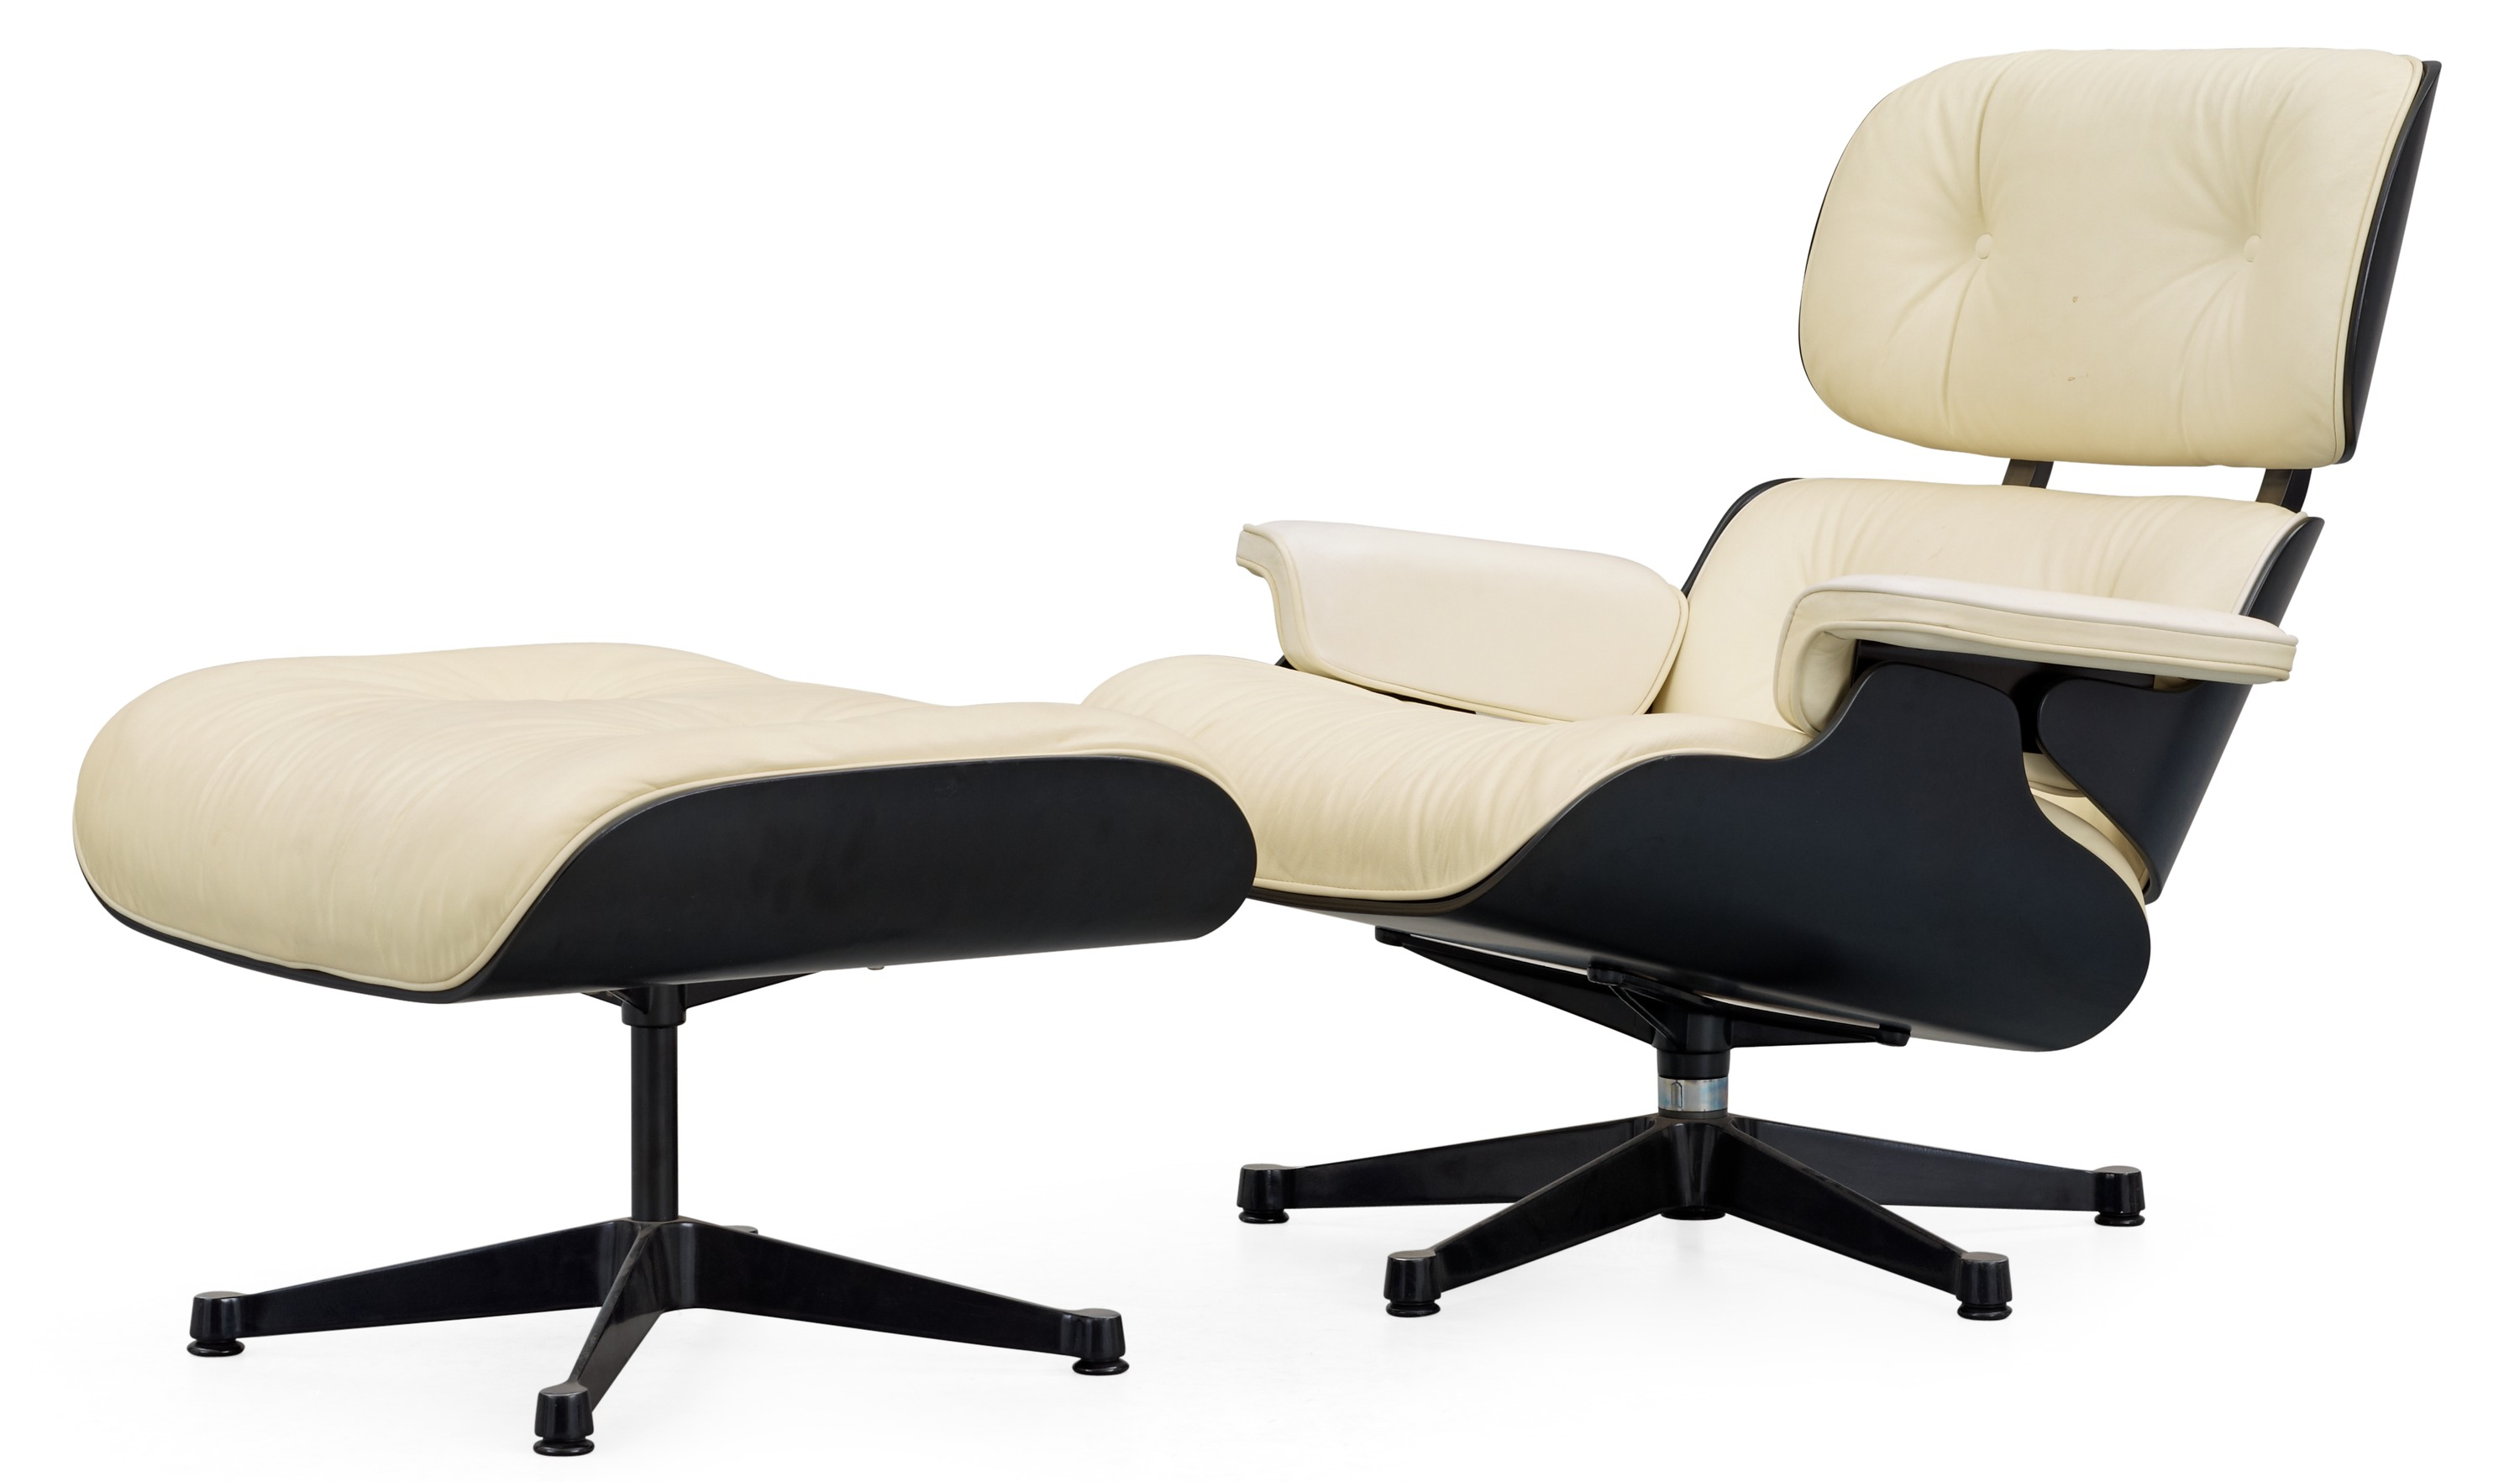 Brilliant A Charles Ray Eames White Leather Lounge Chair And Uwap Interior Chair Design Uwaporg